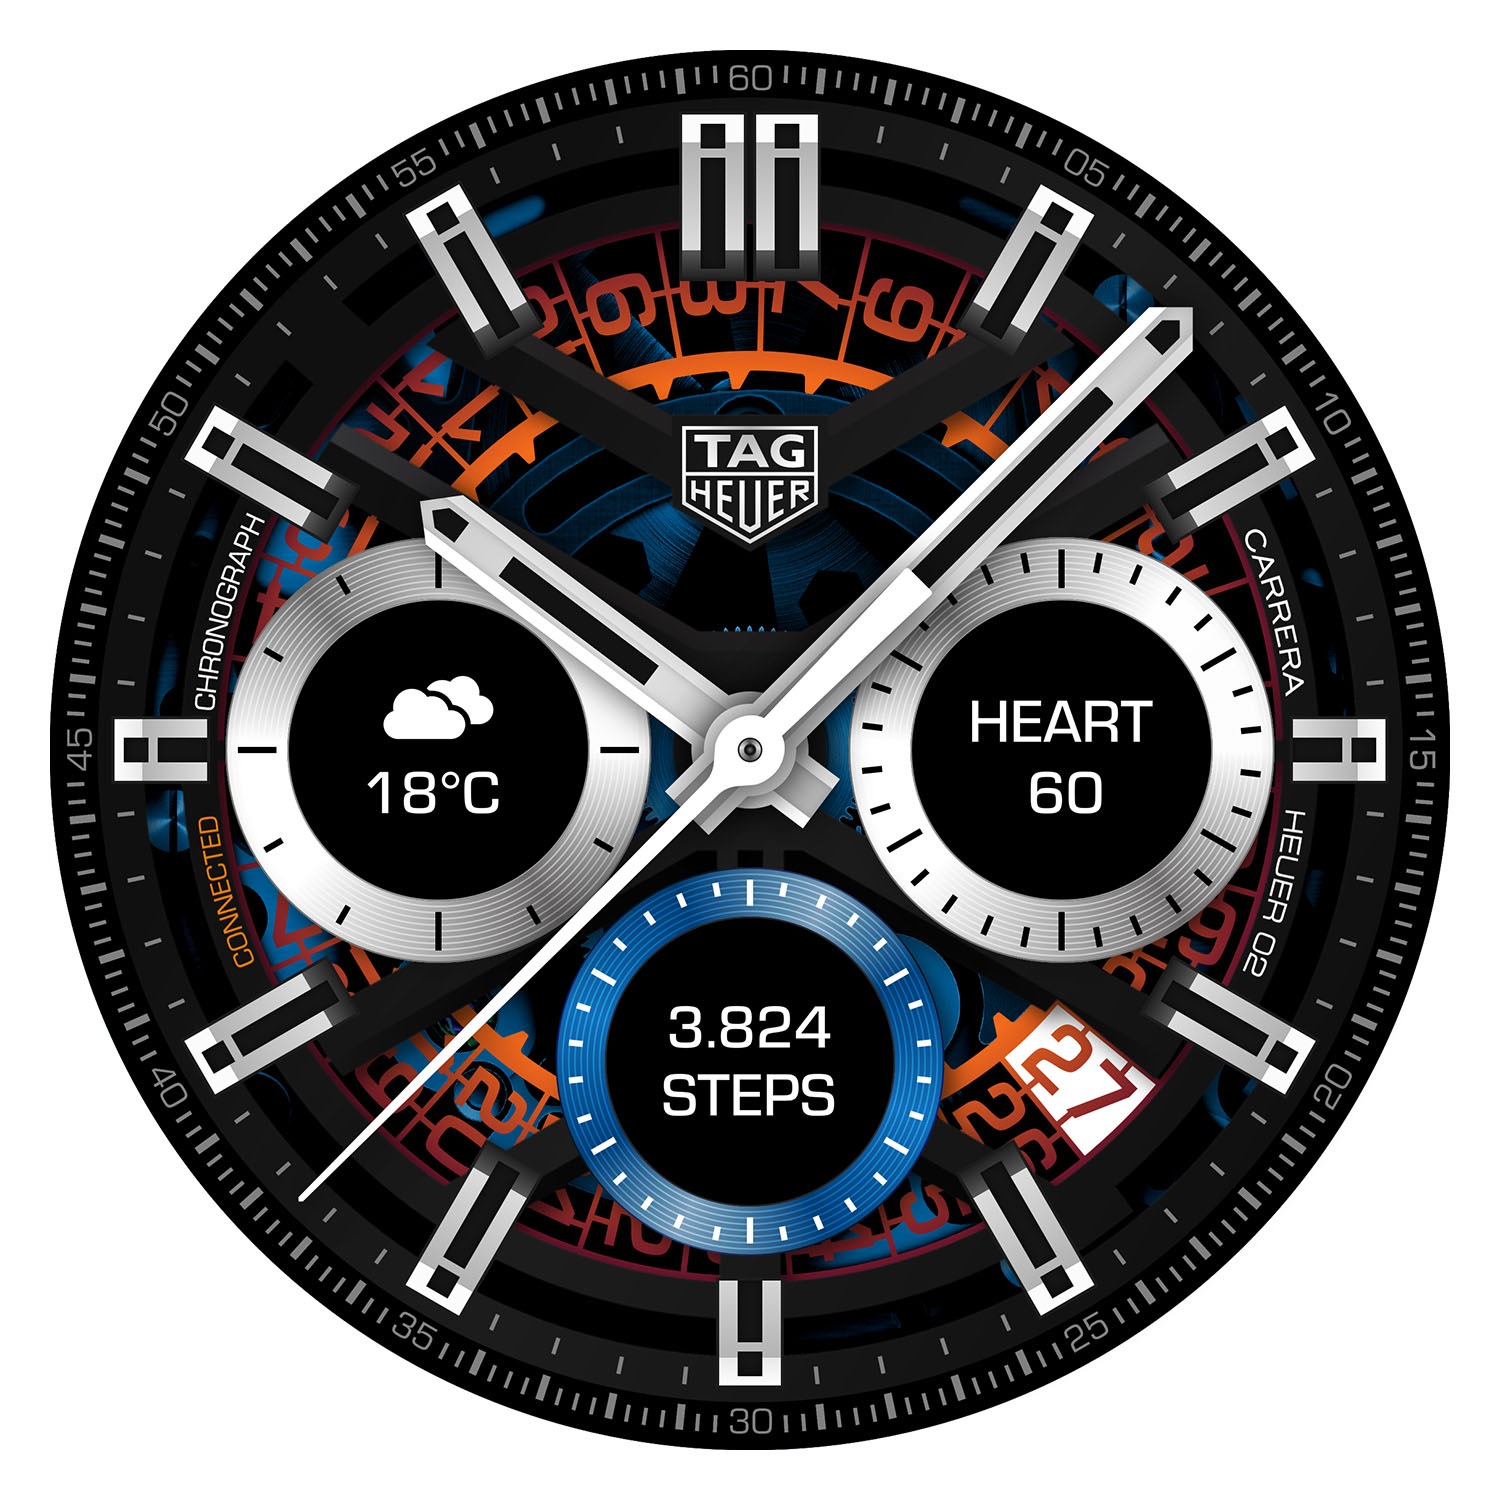 TAG heuer Connected Watch 2020 - 16